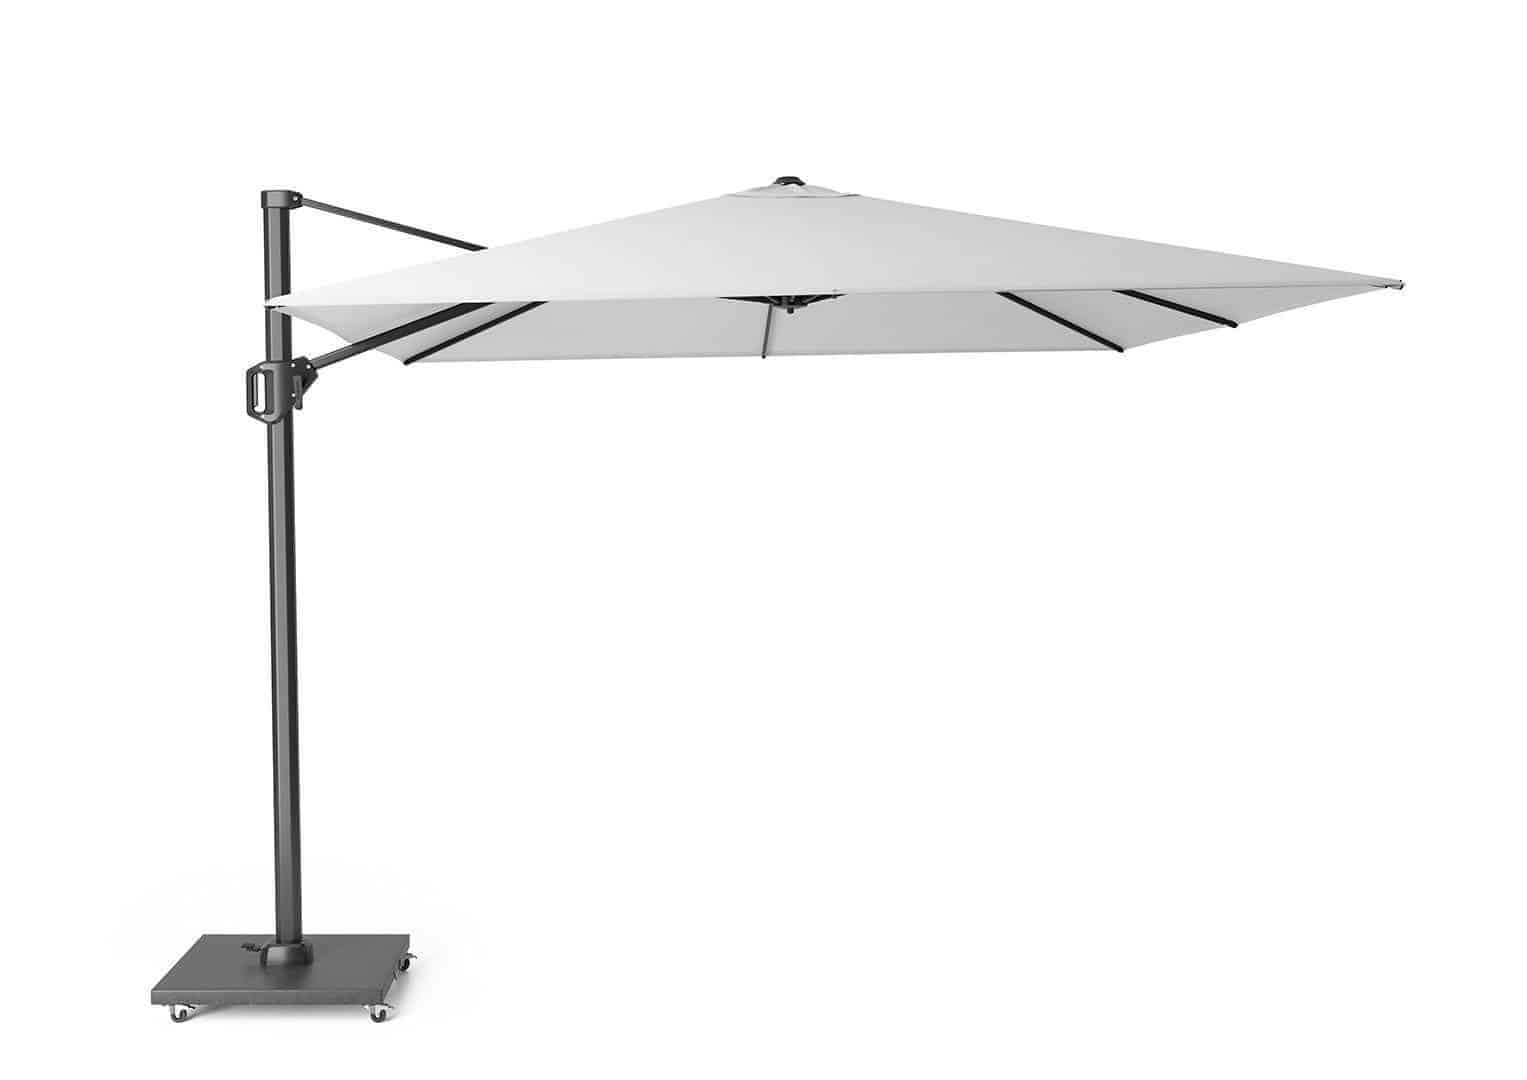 Parasol ogrodowy Challenger T1 3 m x 3 m white 7142A 259